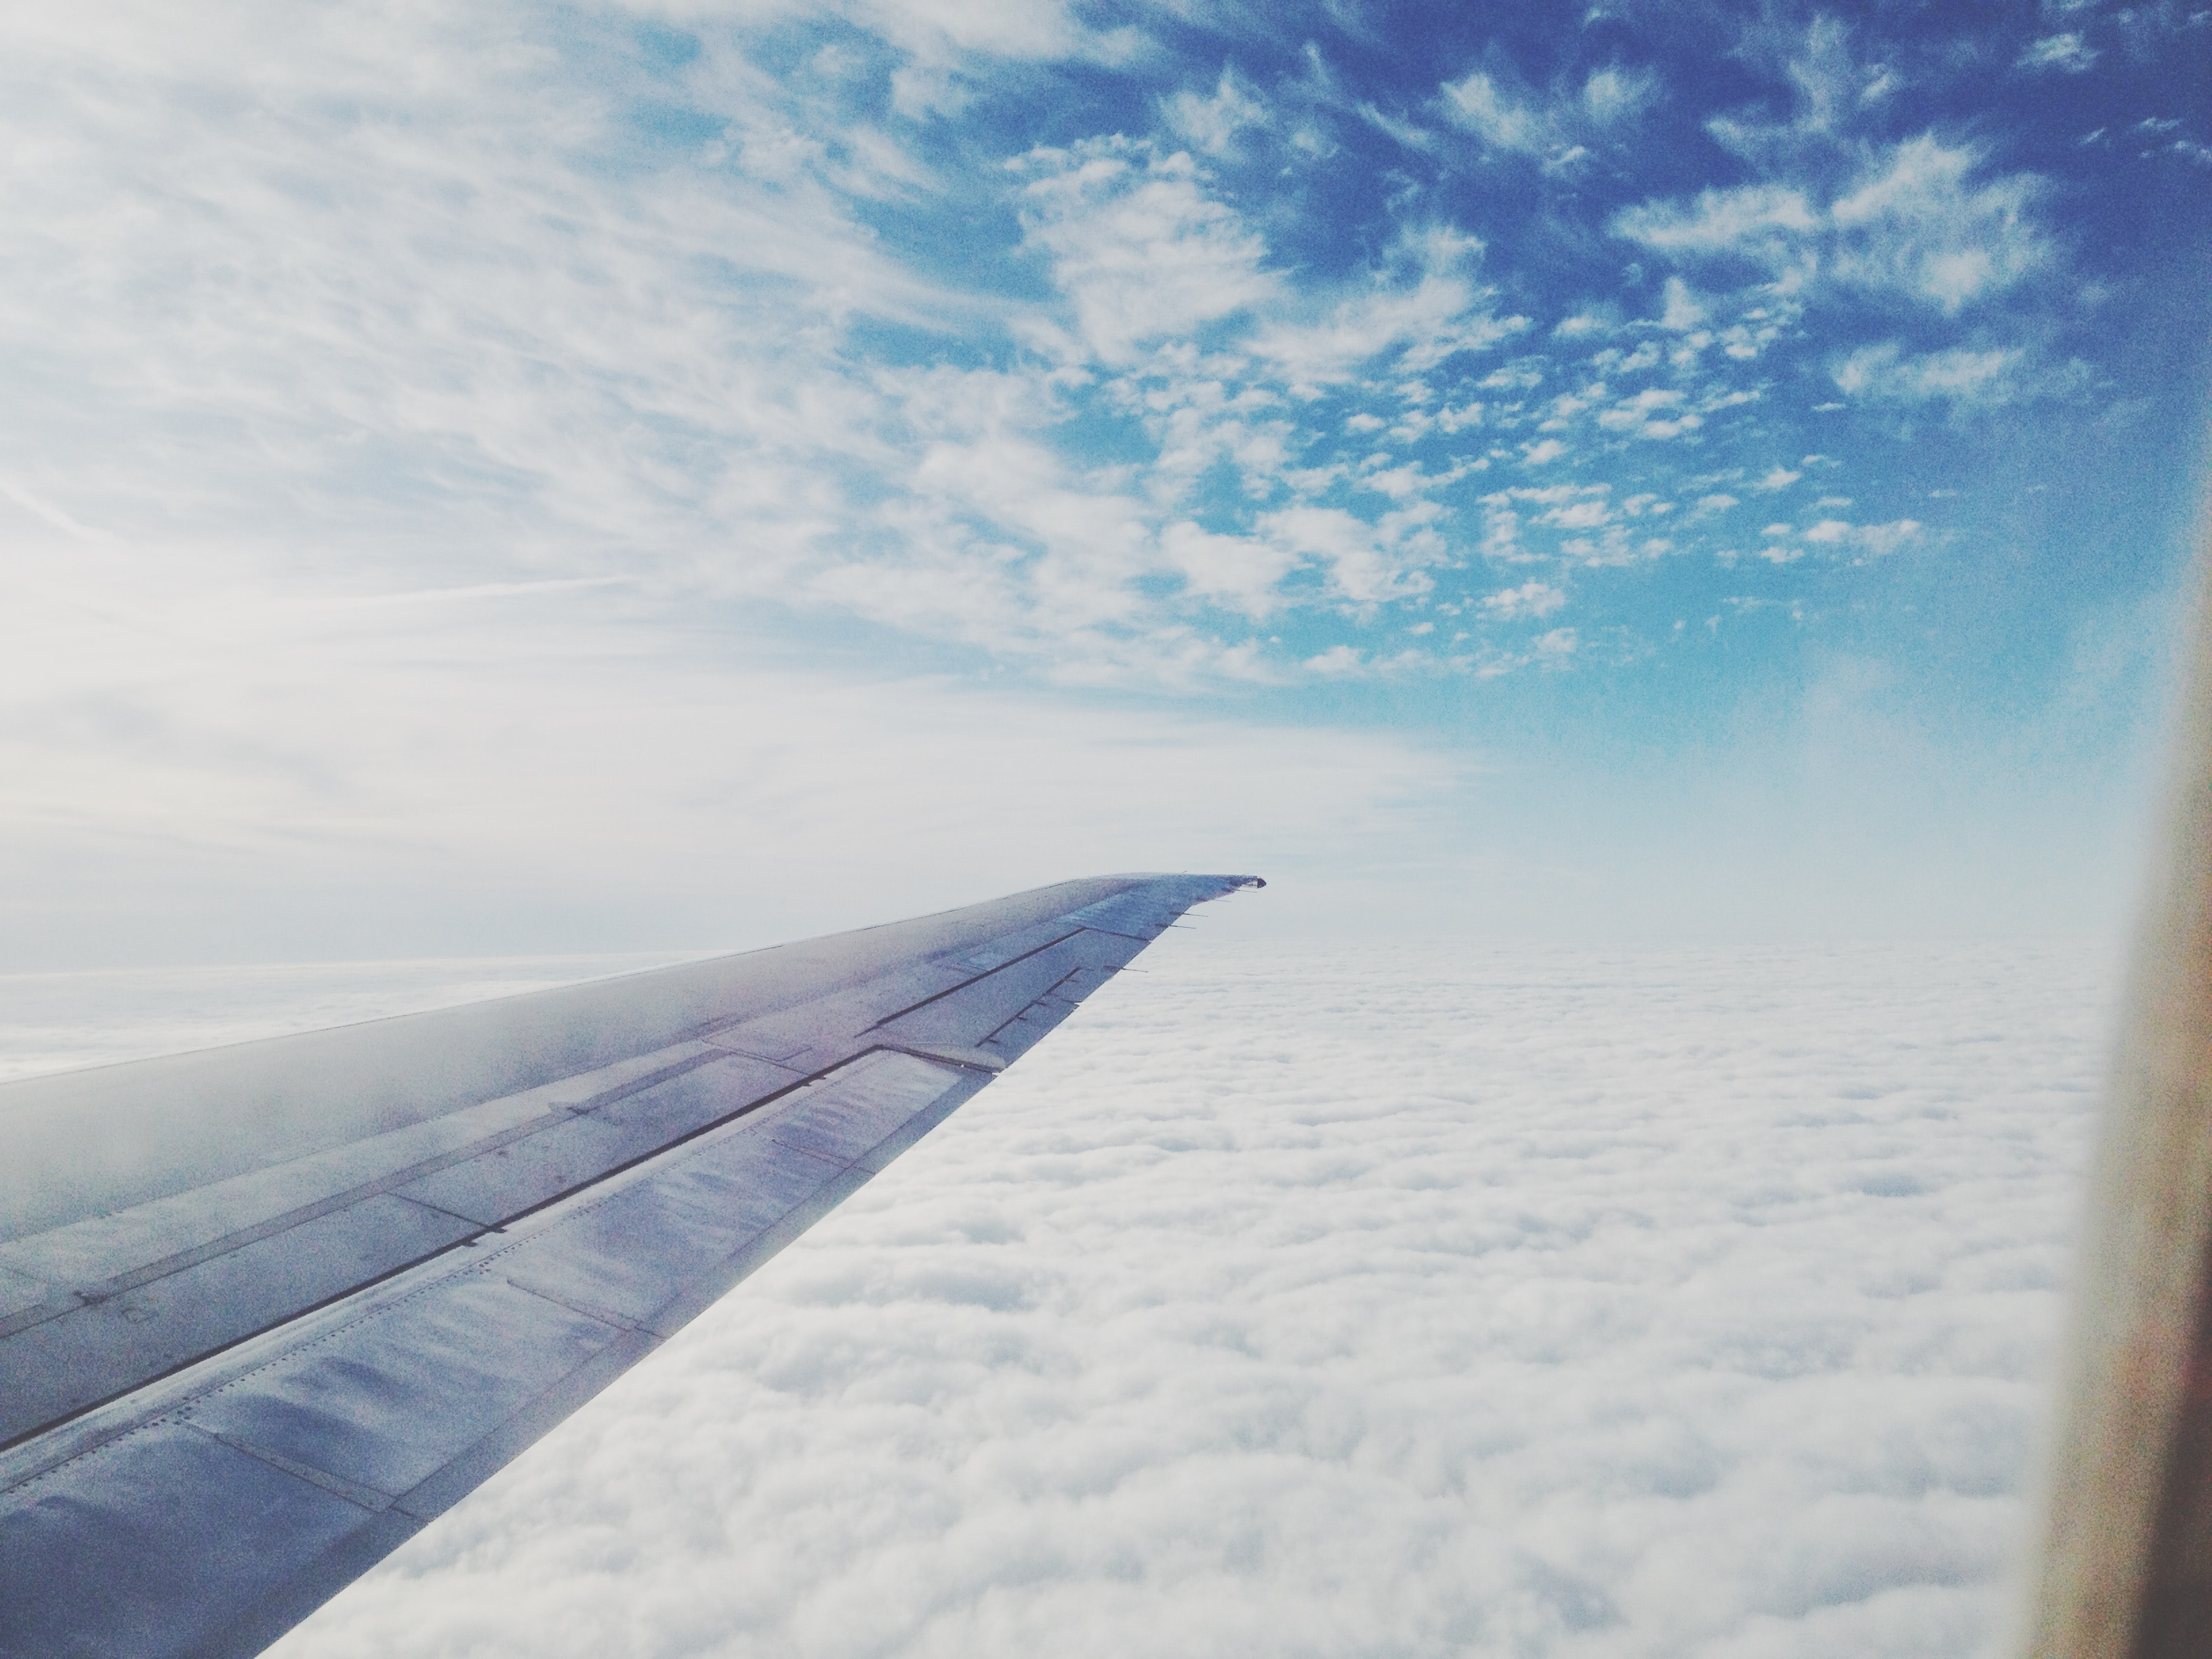 airplane wing soaring on white clouds